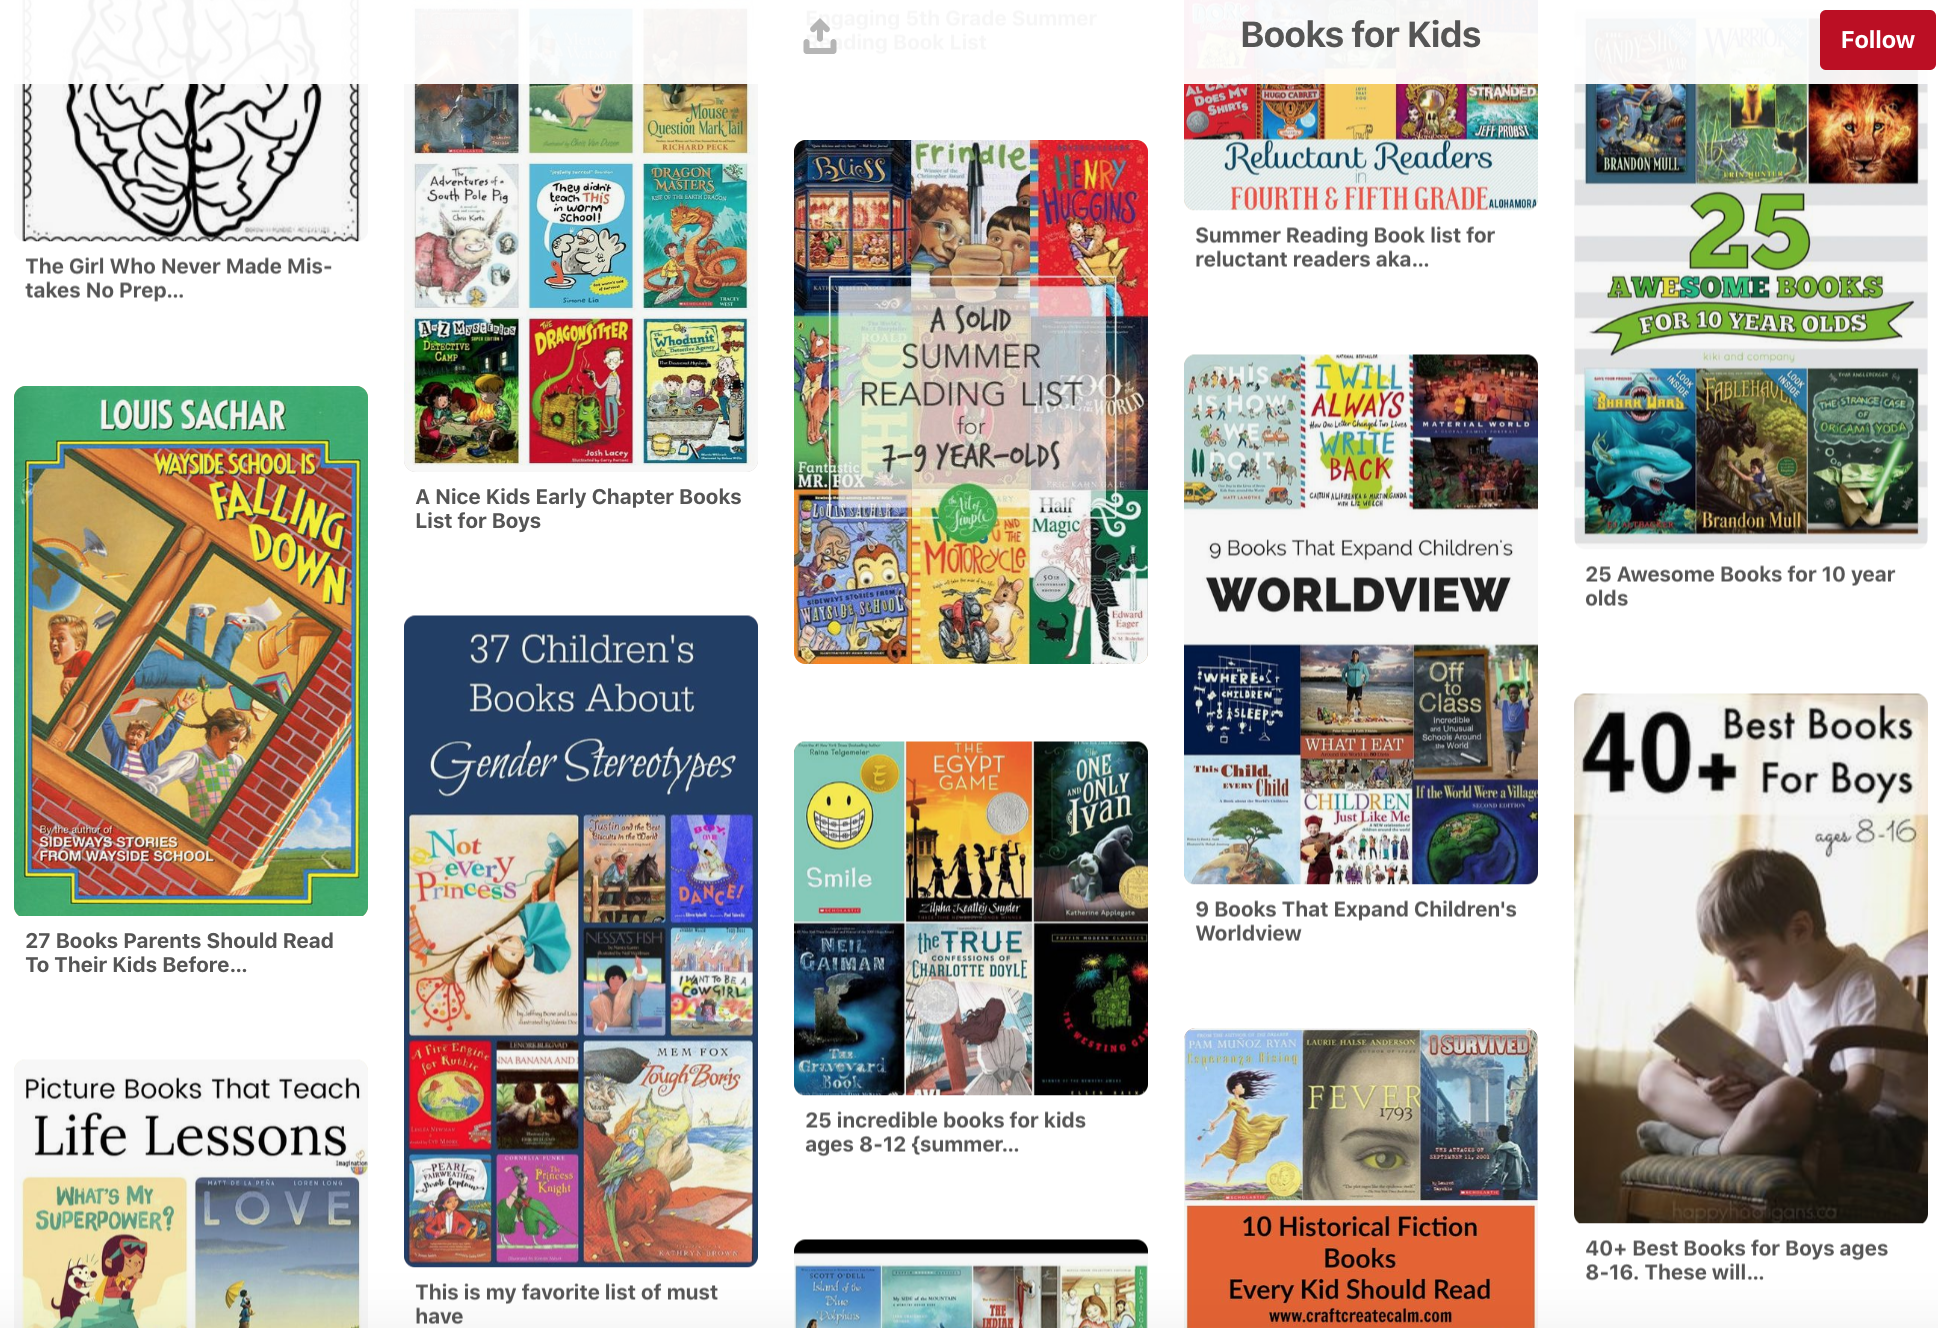 Great titles and recommendations for all ages. Filled with book ideas!